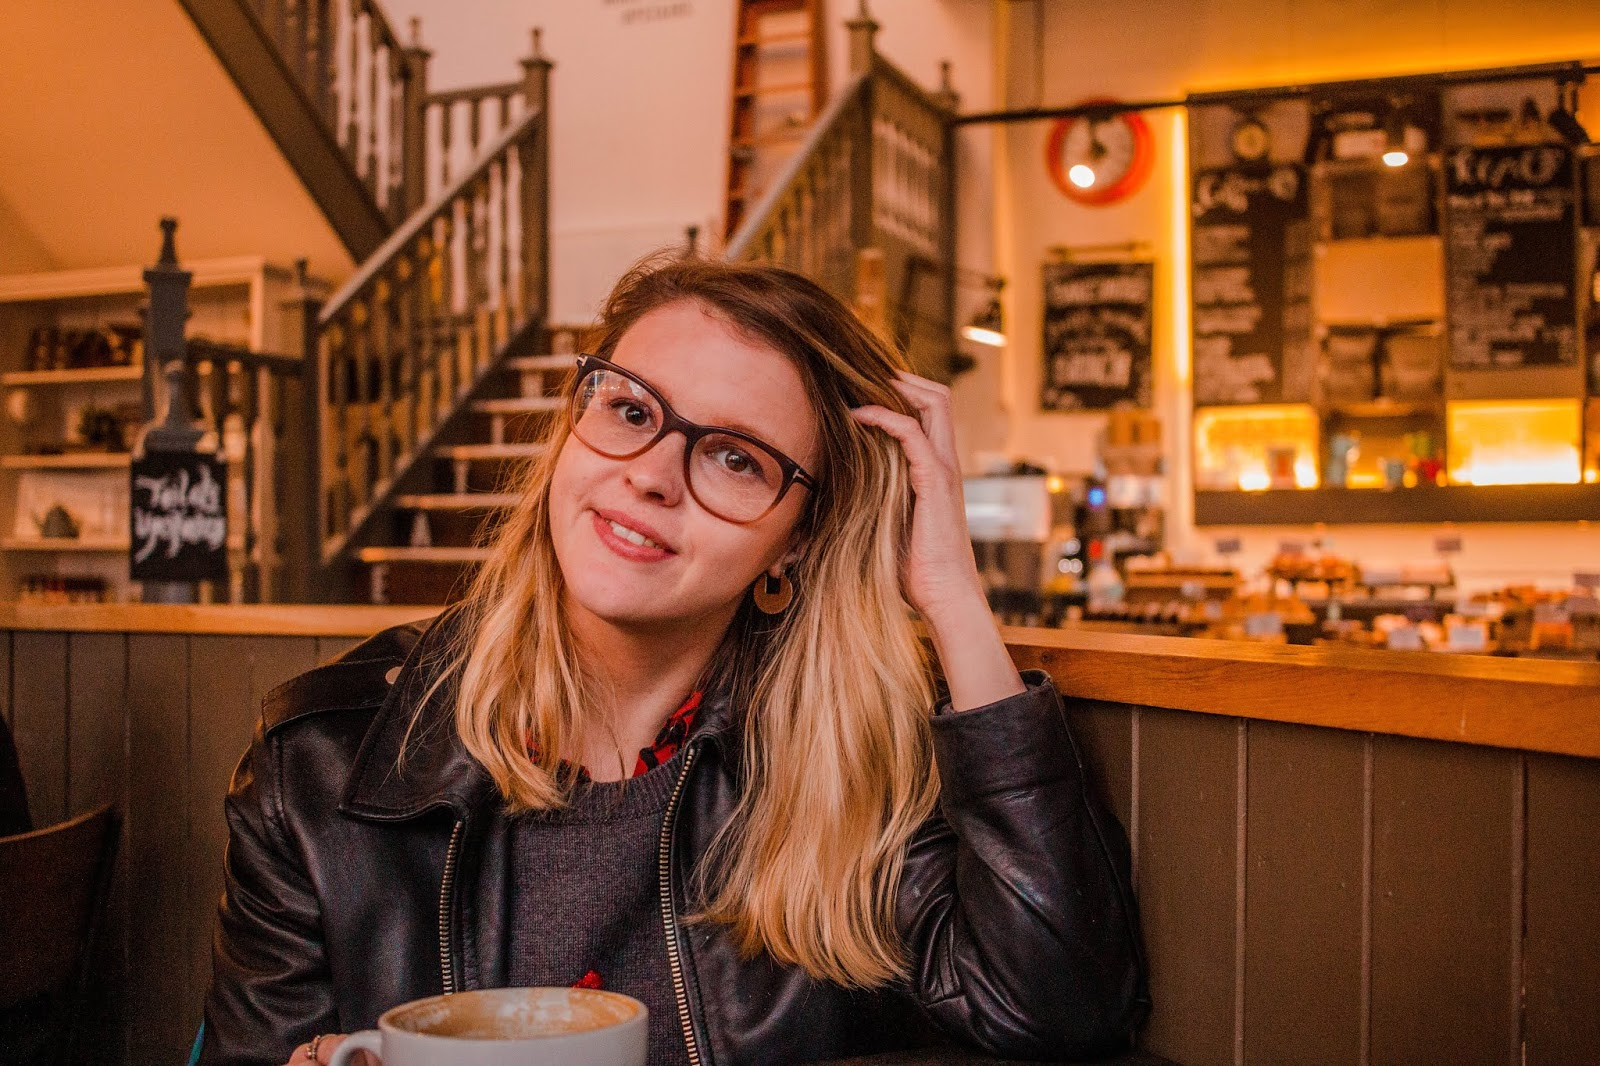 blonde girl chloeharriets in leather jacket and thick rimmed glasses, in coffee shop smiling for lifestyle blog picture, new year new start, blog rebrand